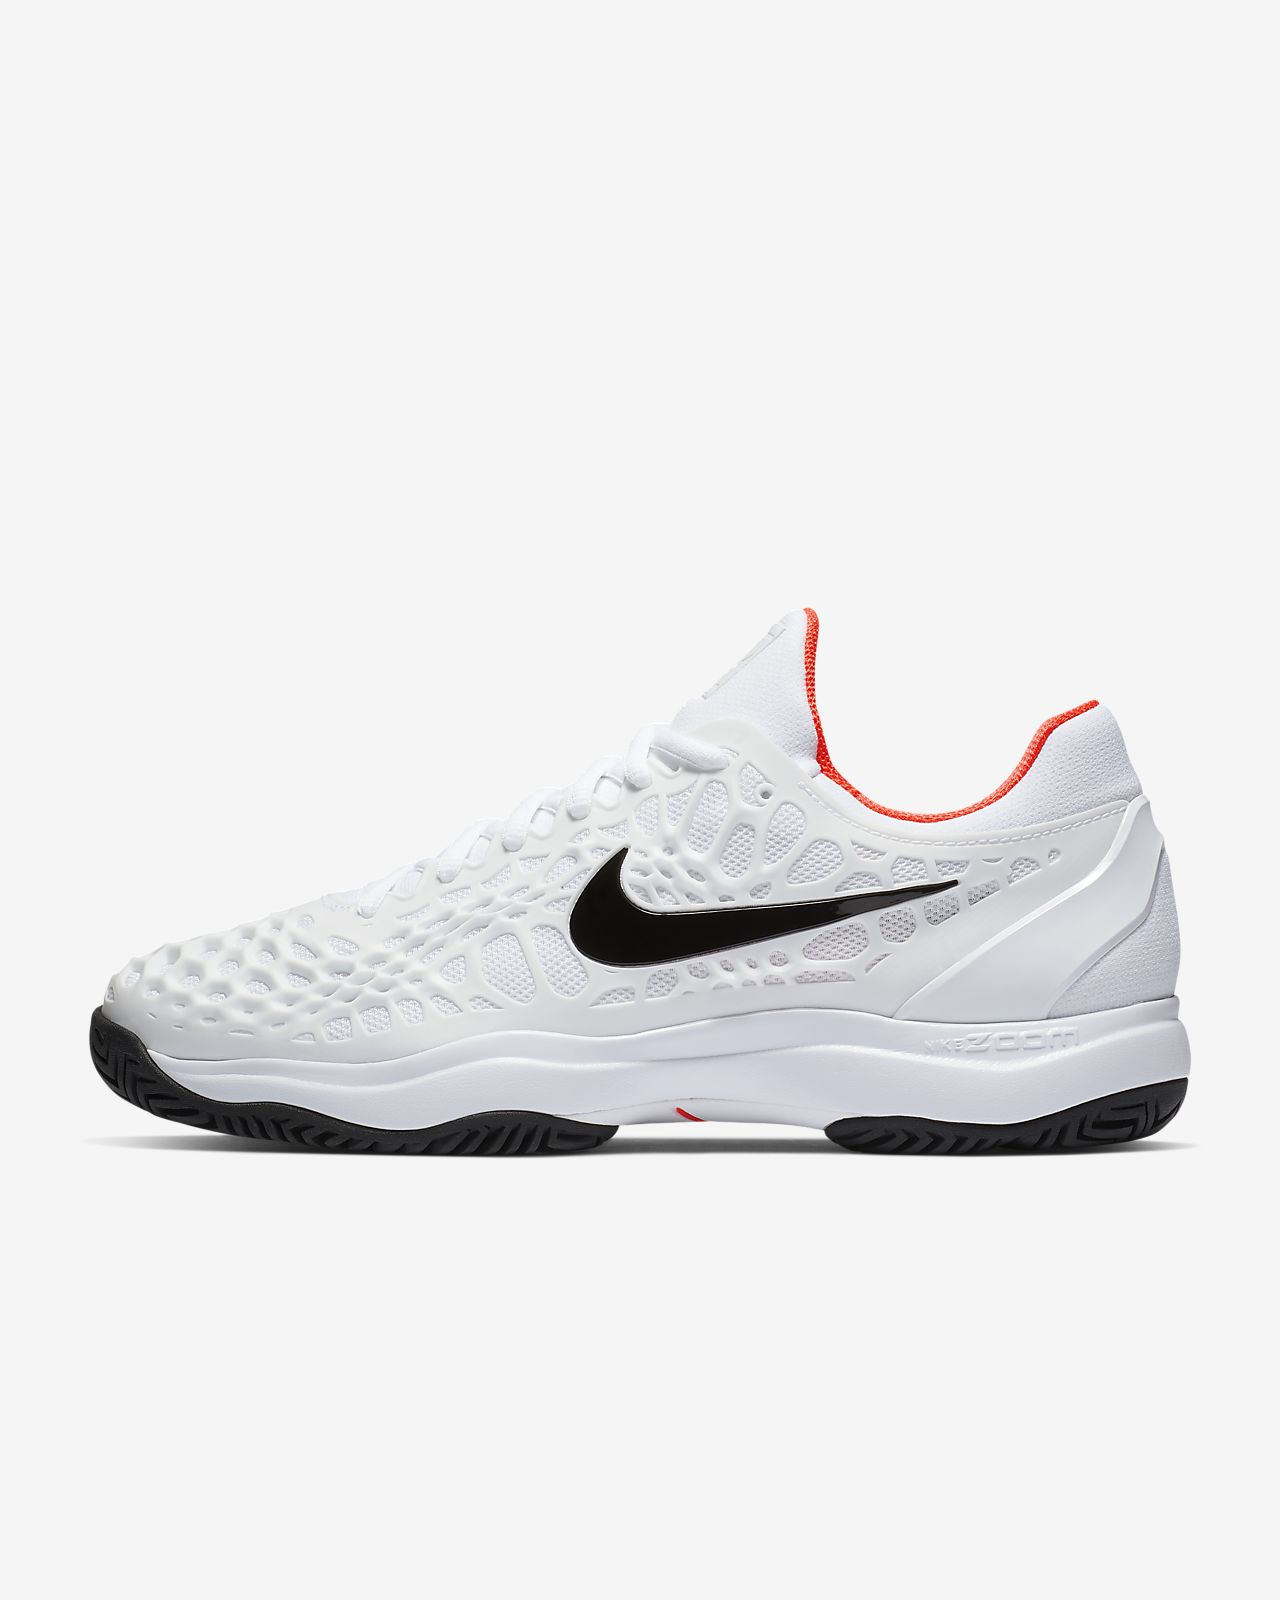 83159dffe2e57 NikeCourt Zoom Cage 3 Men s Hard Court Tennis Shoe. Nike.com